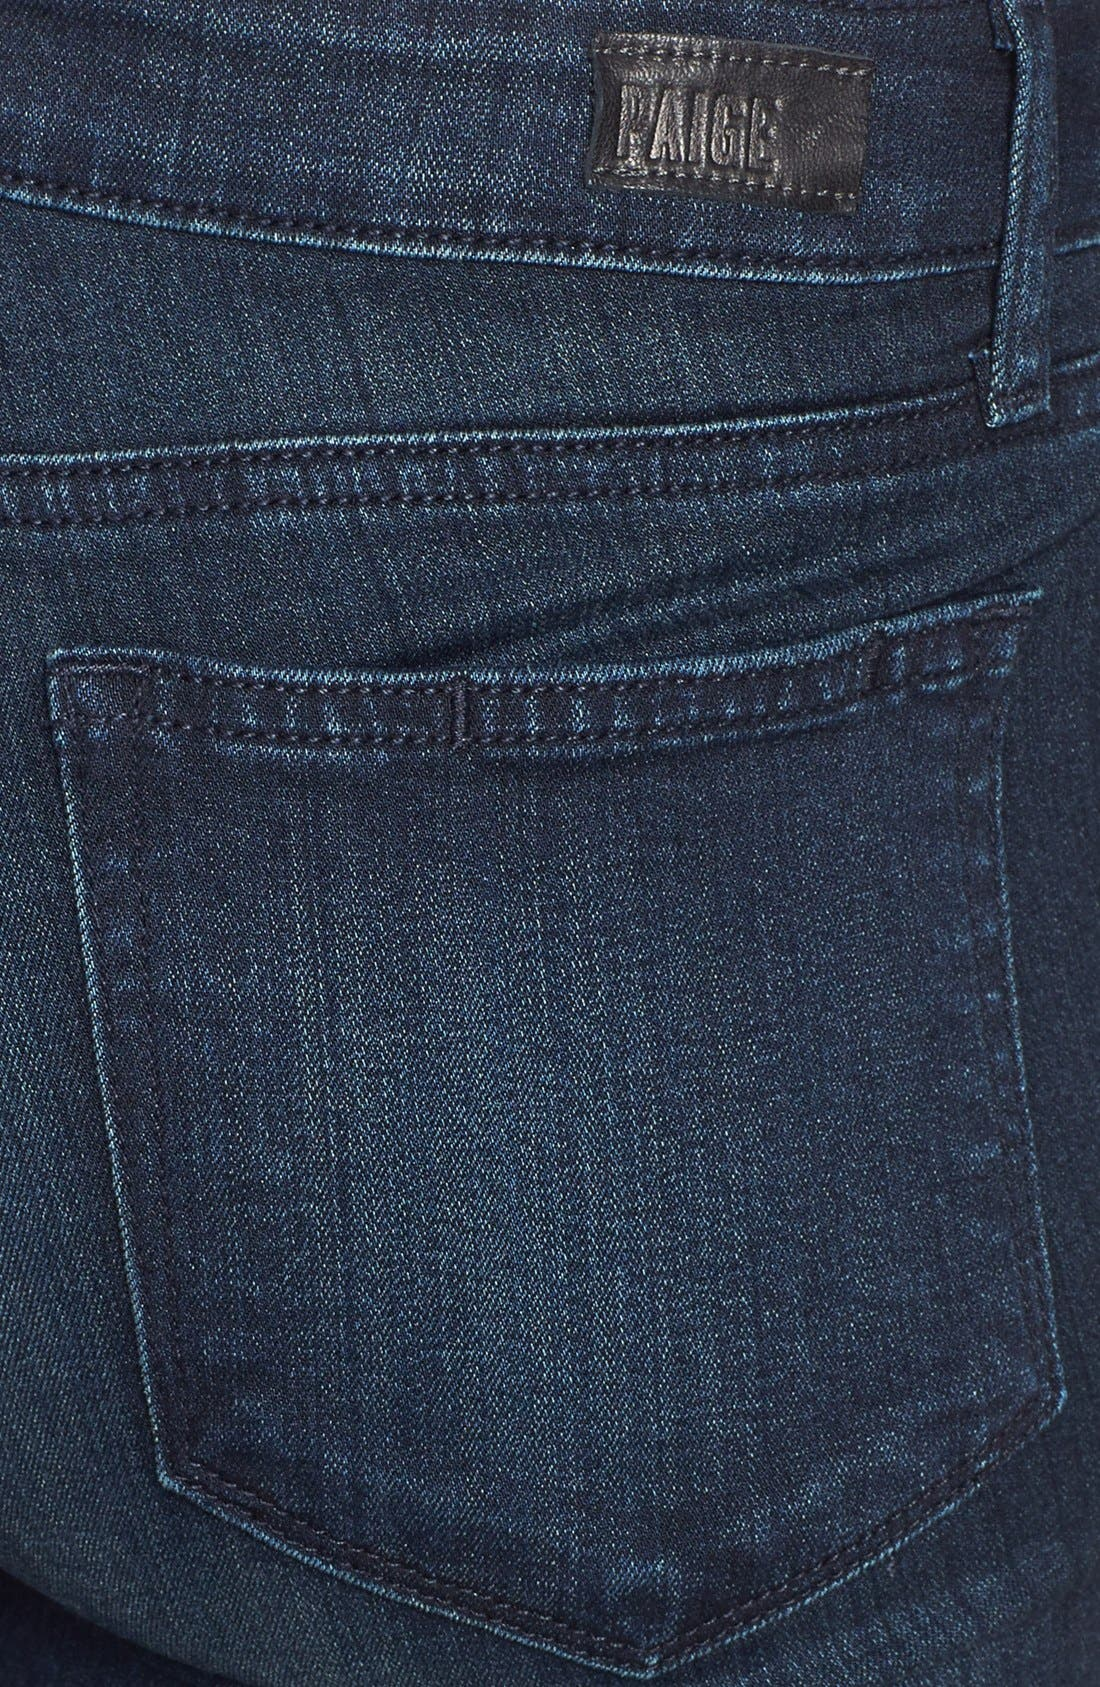 Transcend - Verdugo Crop Skinny Jeans,                             Alternate thumbnail 3, color,                             MIDLAKE